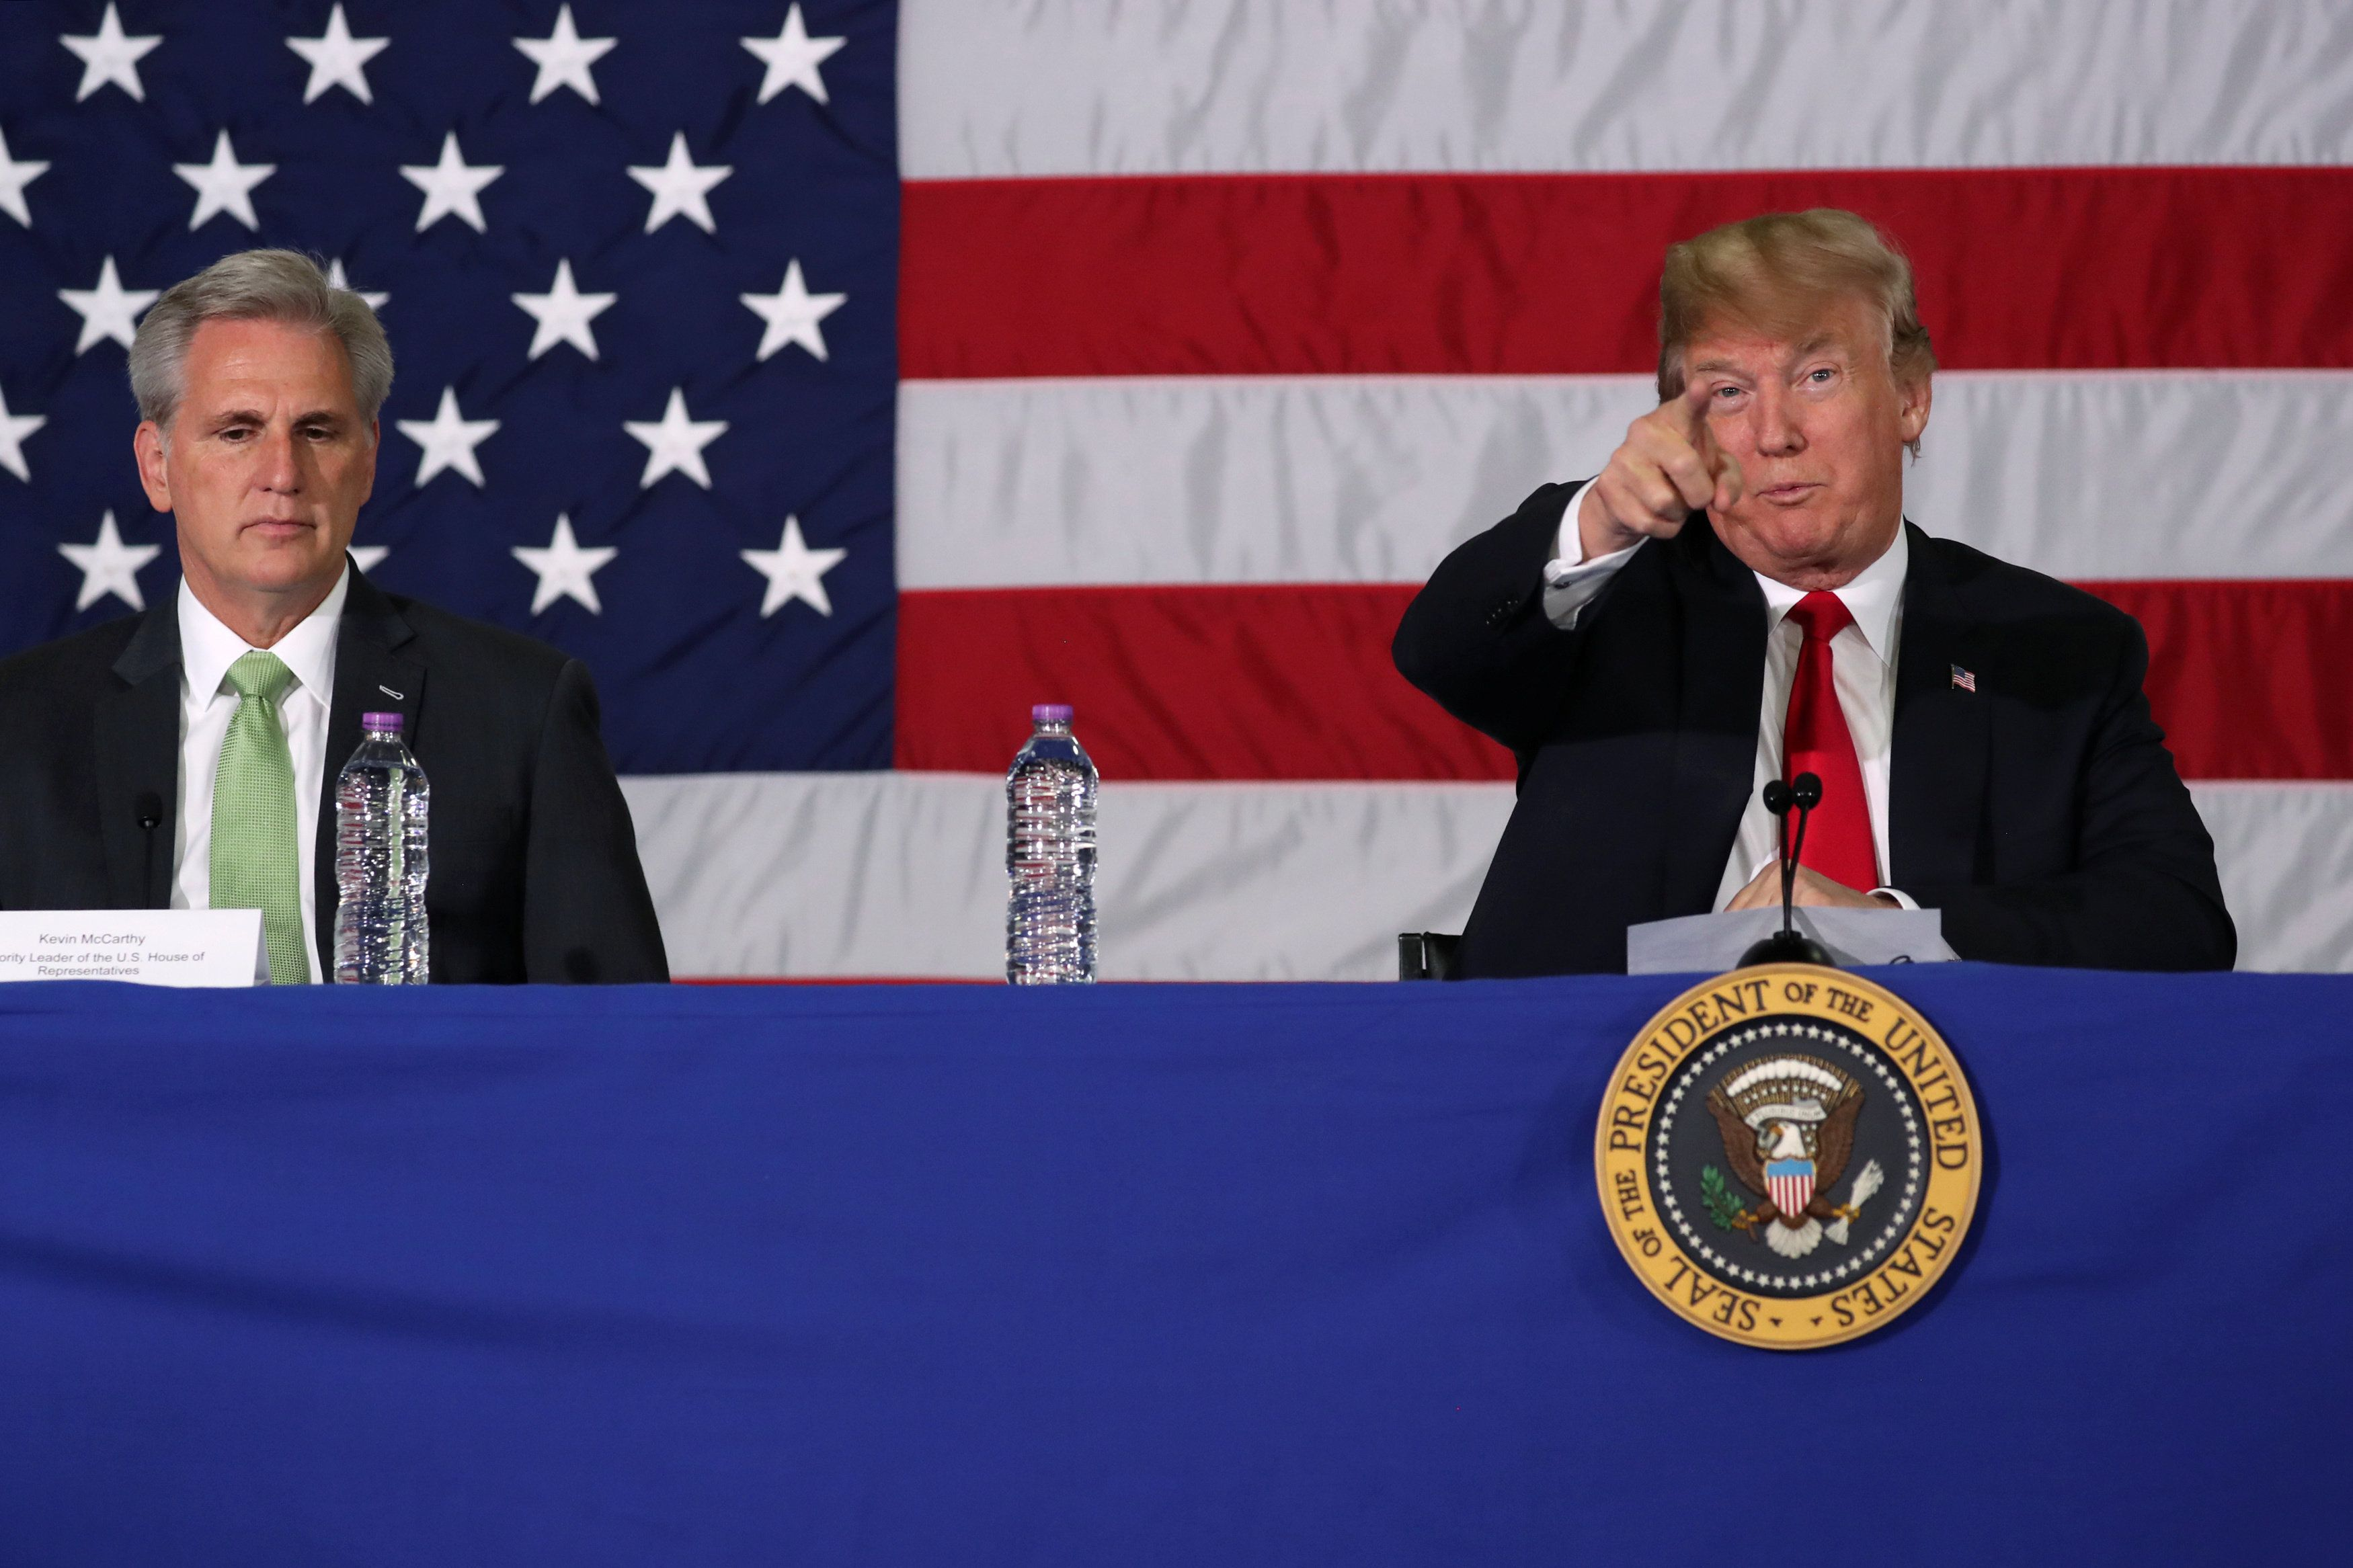 U.S. President Donald Trump, flanked by House Majority Leader Kevin McCarthy (R-CA), calls out reporters at the back of the room as he participates in a roundtable discussion about trade in Duluth, Minnesota, U.S. June 20, 2018. REUTERS/Jonathan Ernst